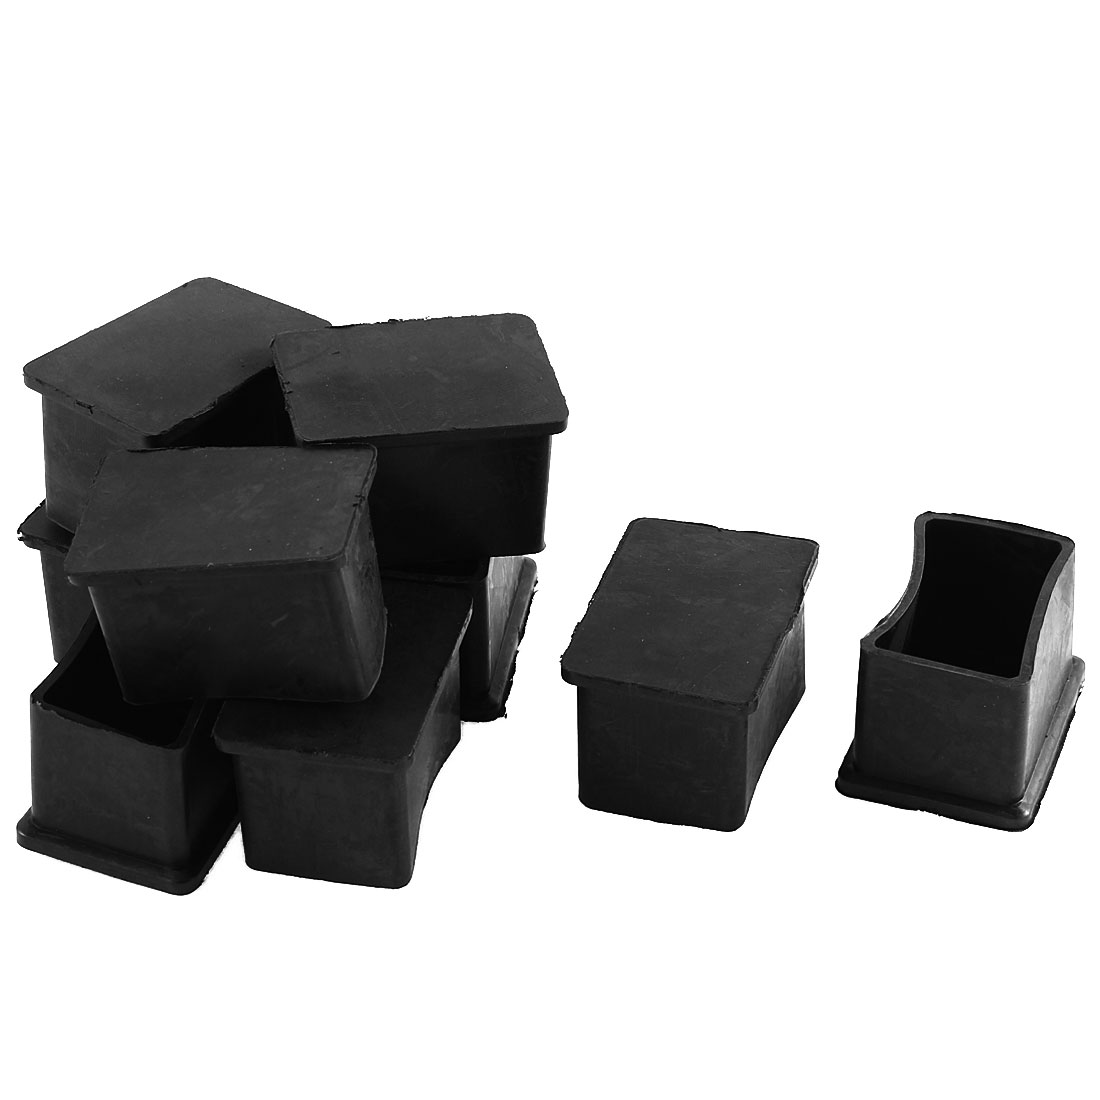 9 Pcs Furniture Chair Table Leg Rubber Foot Covers Protectors 25mm x 37mm